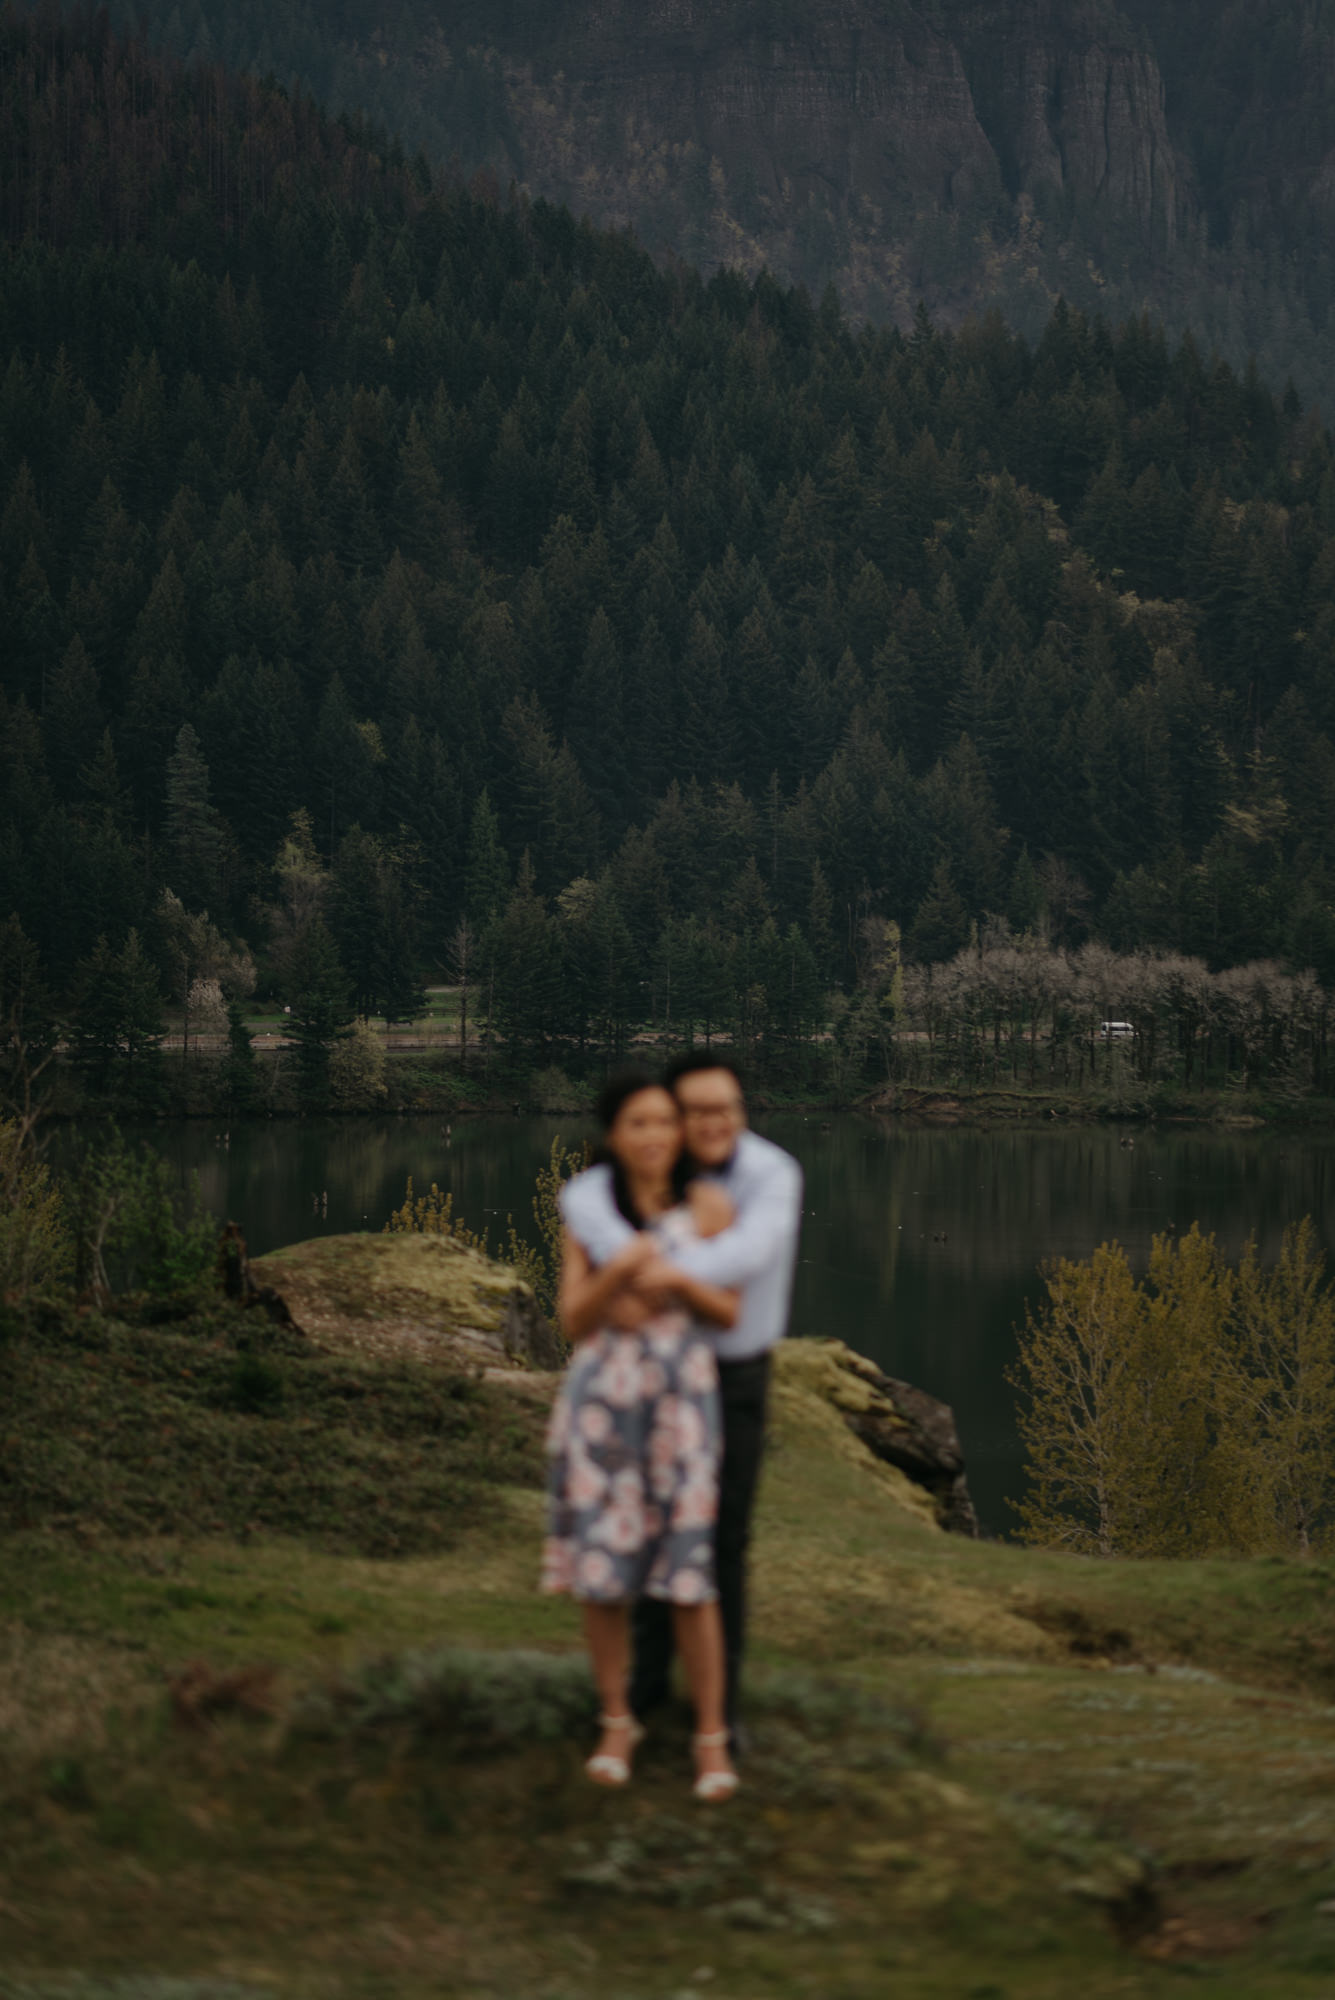 cascade-locks-engagement-cloudy-fun-sunset-4472.jpg